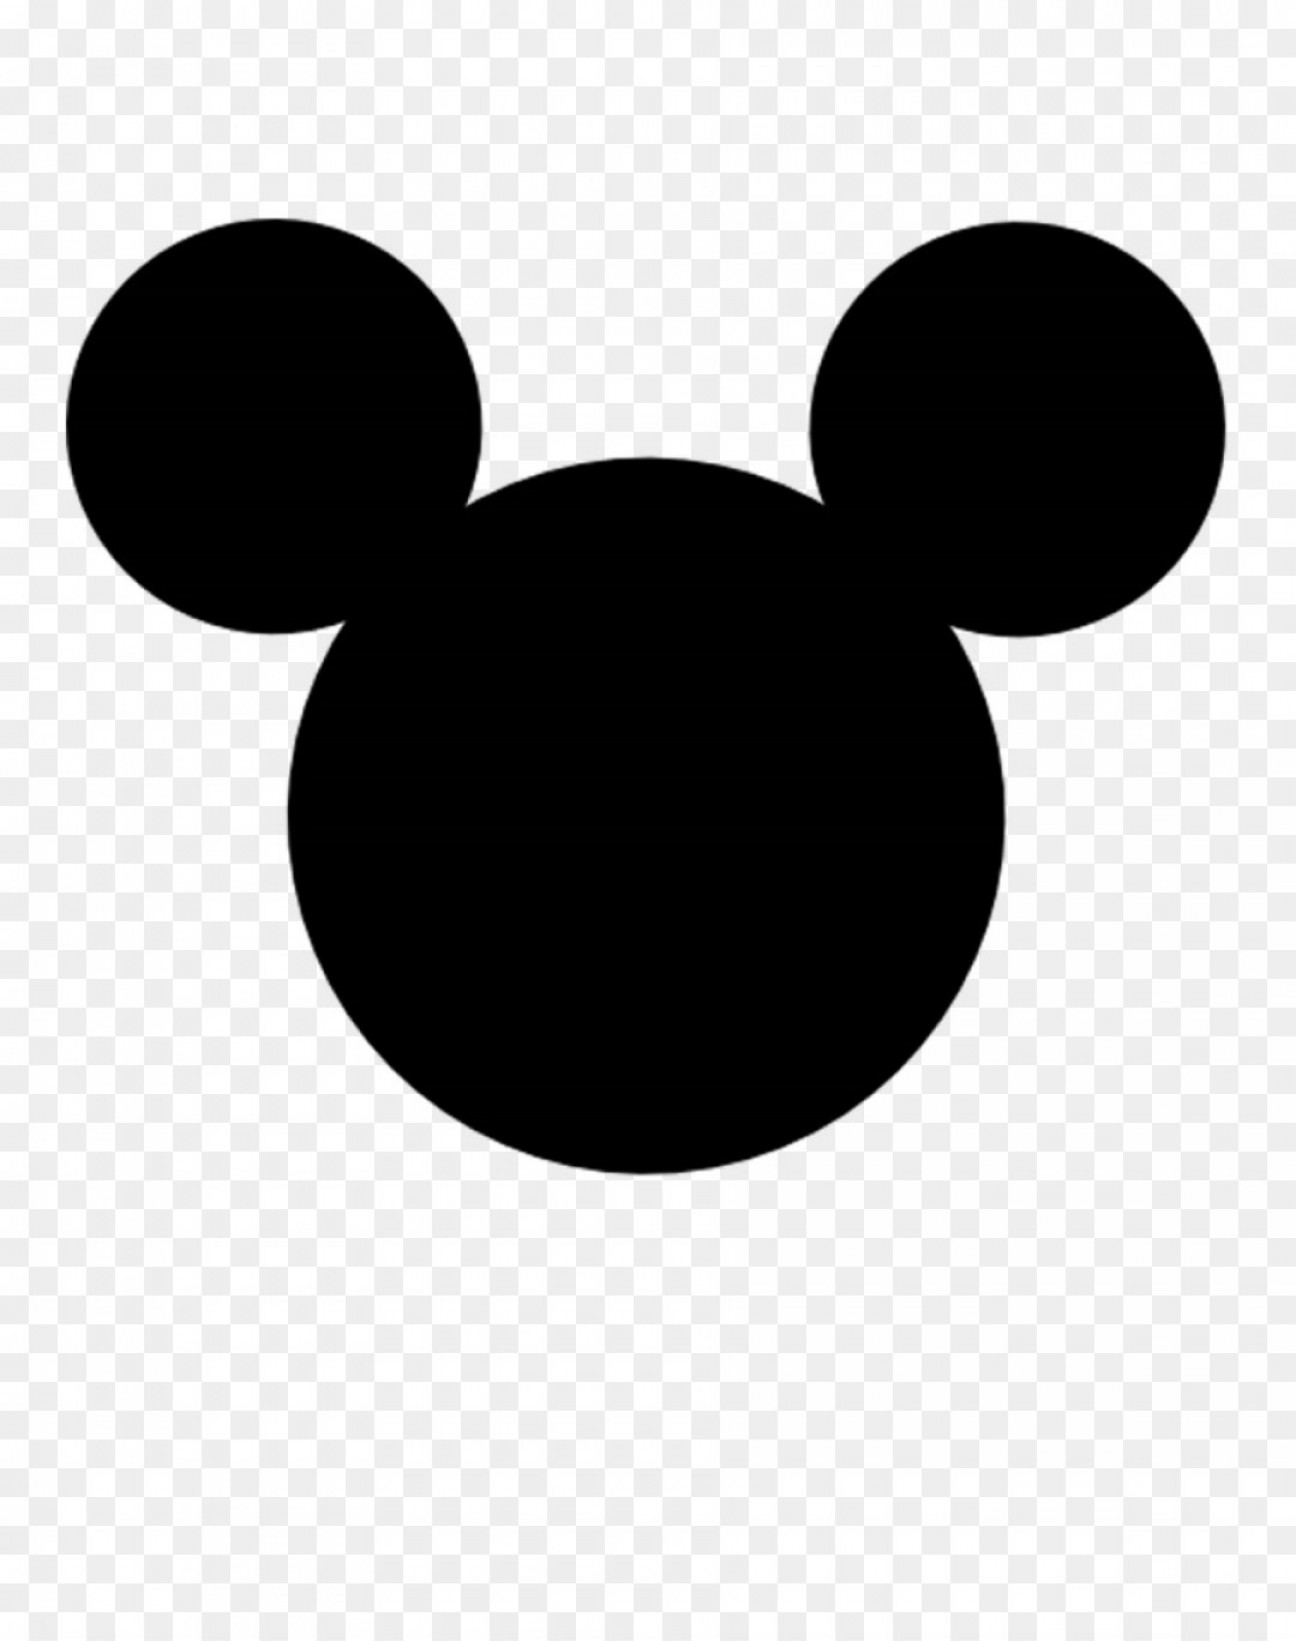 Png Mickey Mouse Logo The Walt Disney Company Clip Art.